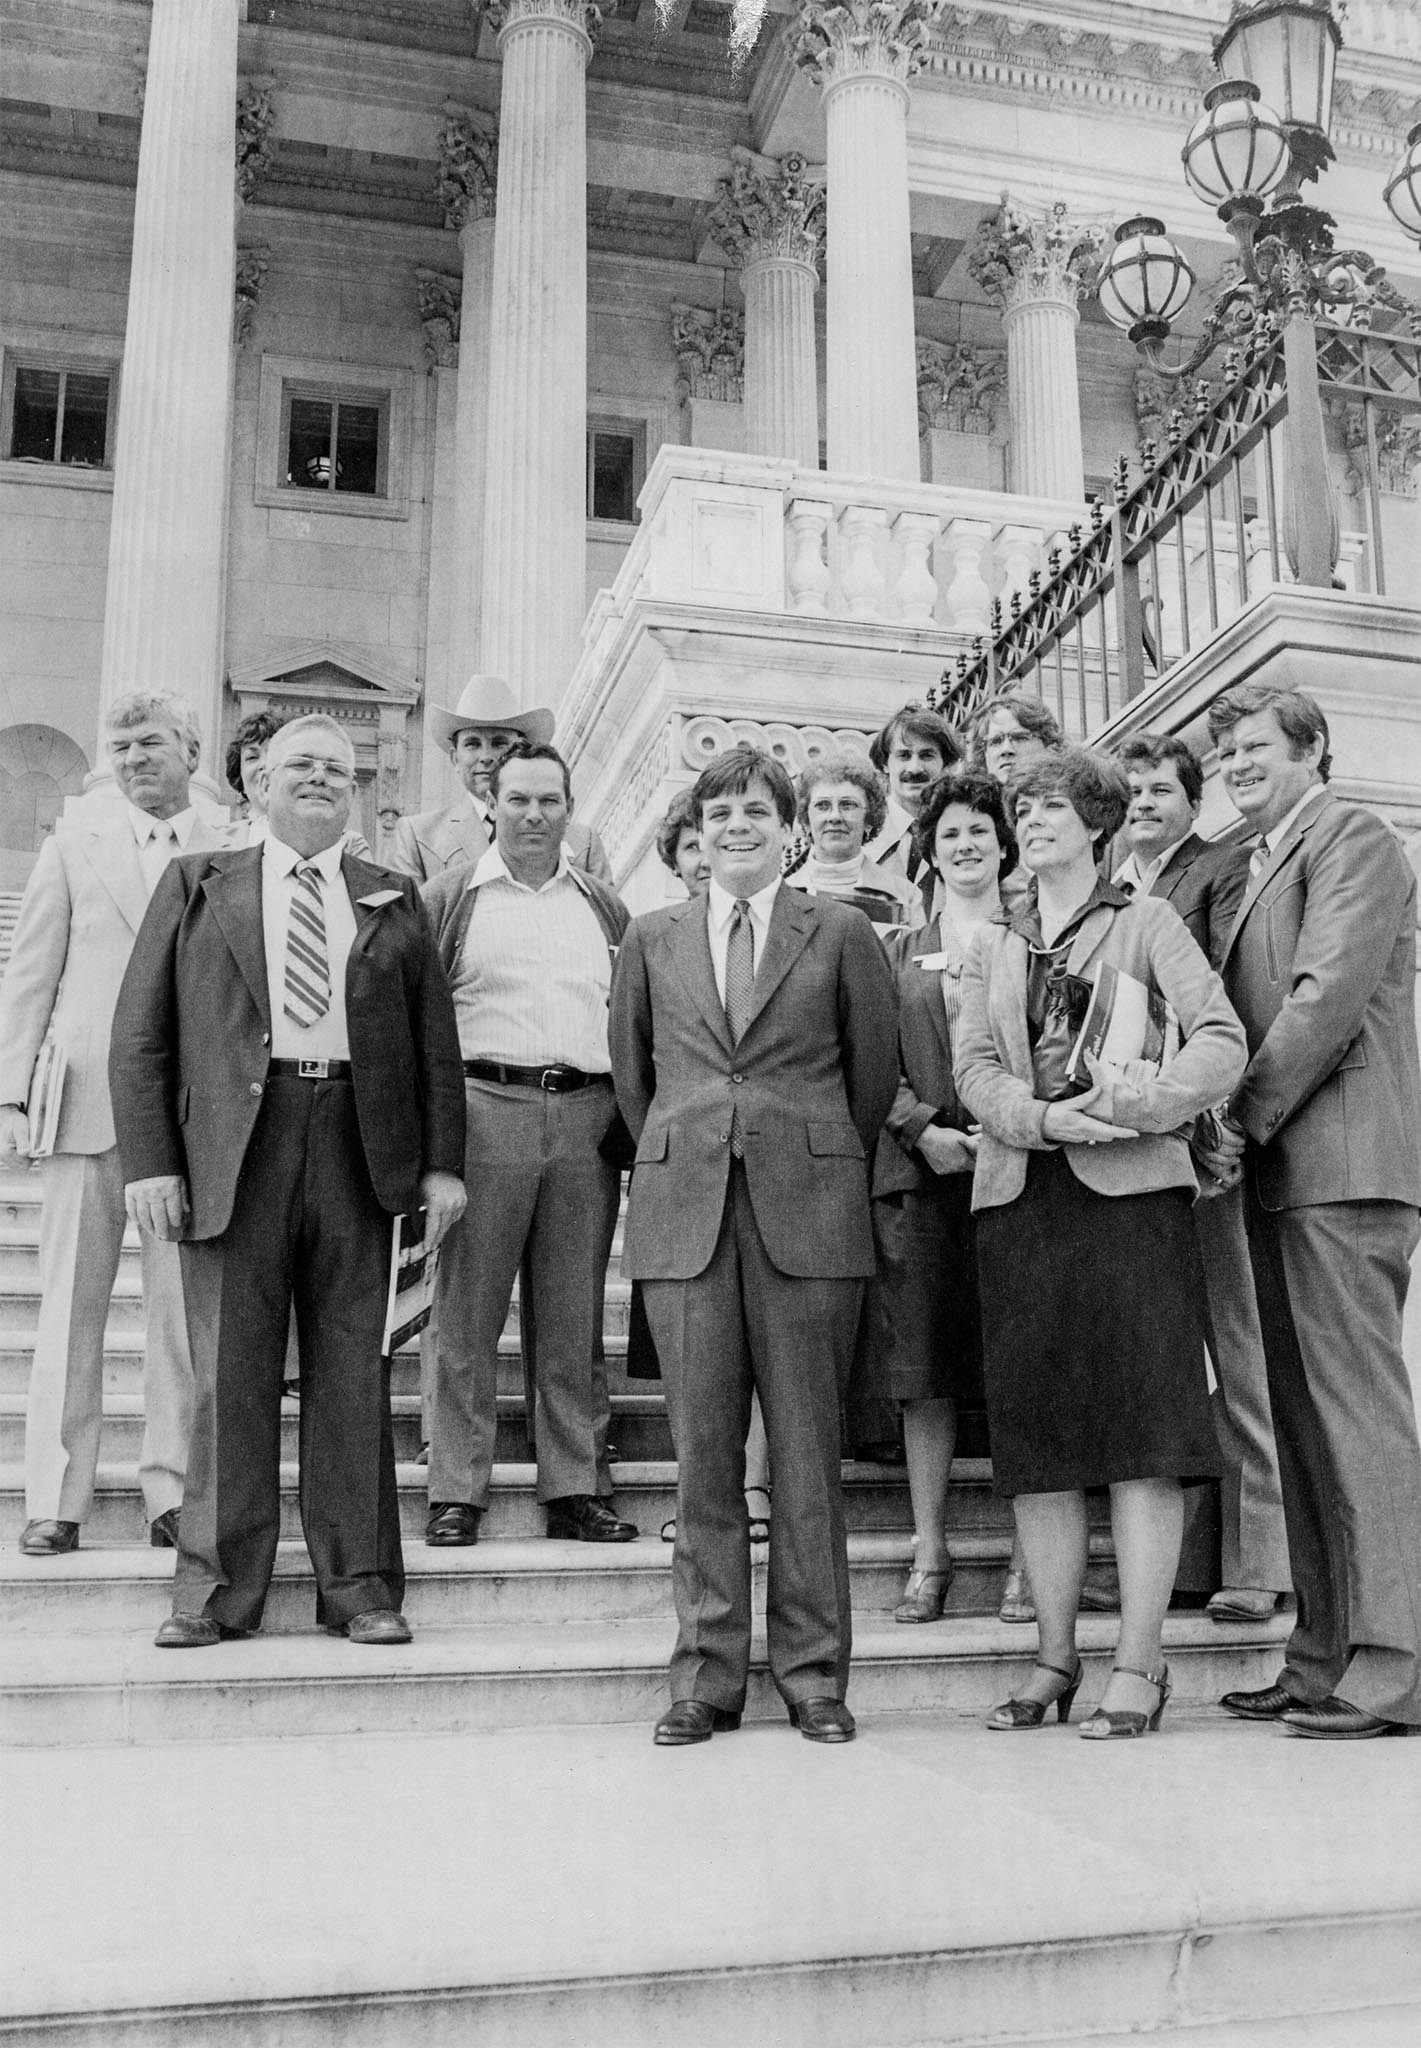 This group of Oklahoma Farm Bureau members traveled to Washington, D.C., in 1982 during the annual legislative tour where they met with Rep. Mike Synar on the front steps of the Capitol building. From left to right are Richard and Carol Linihan of Oologah, Albert Lee of Pryor, Gary Fisher of Tahlequah, Dick and Clara Sheffield of Fort Gibson, Rep. Synar, Ima Landrum of Tulsa, Robin Landrum of Tulsa, Karen Leeds of Fort Gibson, Randy Moore of Inola, Gayle Perry of Fort Gibson, Larry Leeds of Fort Gibson and Arlie Perry of Fort Gibson.